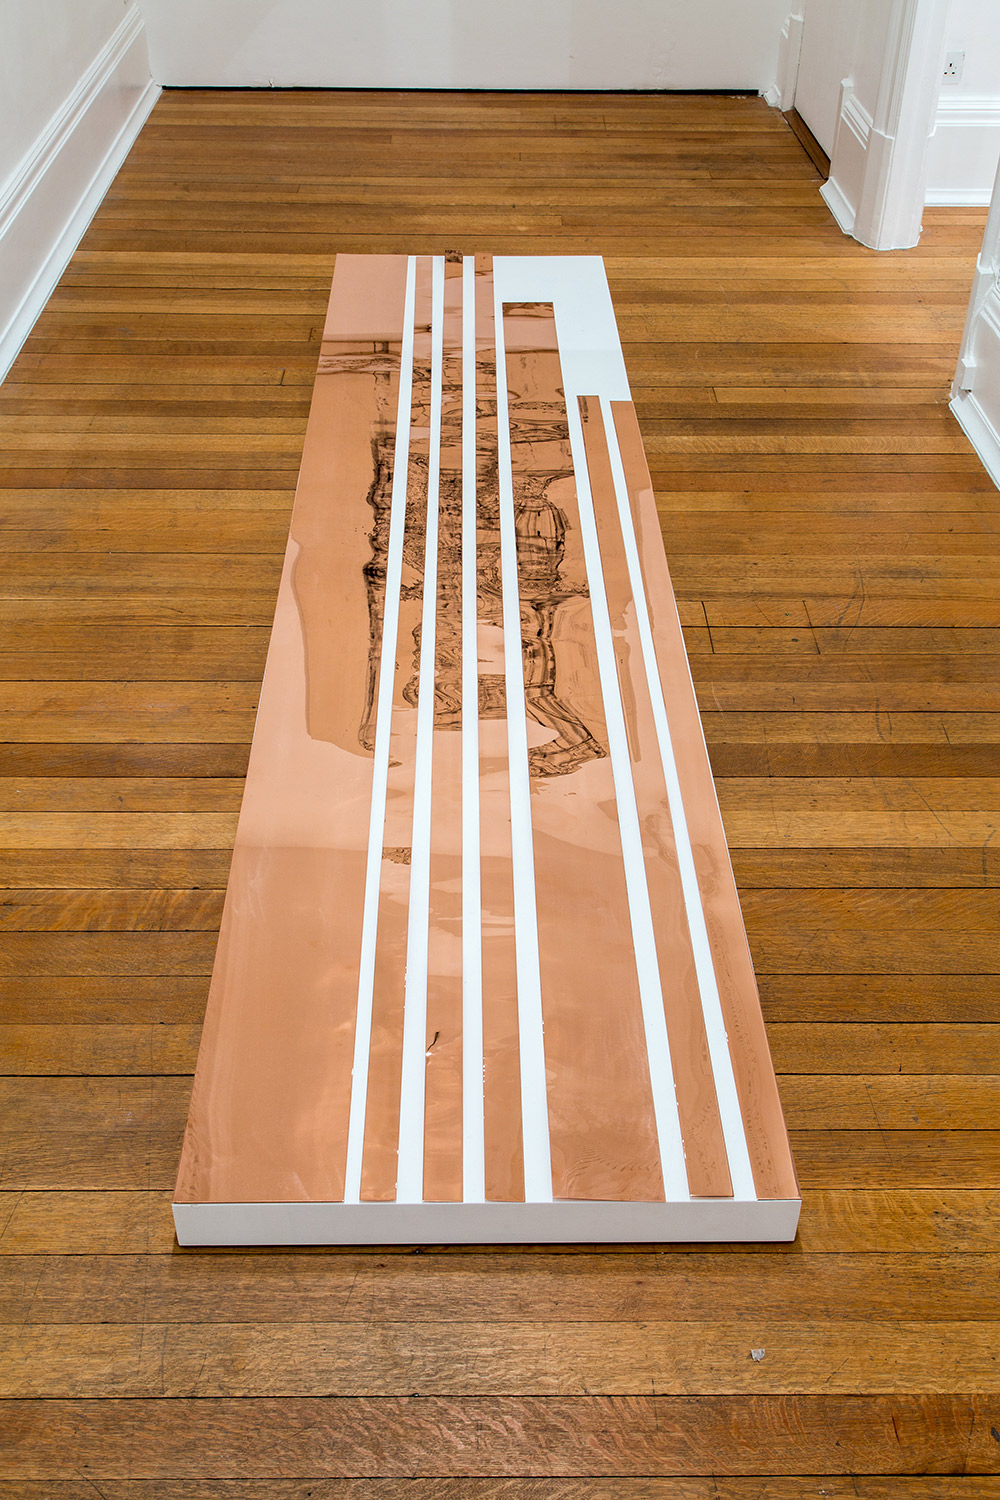 "Copper Remnants (60"" x 120"" 48 ounce C11000 Copper Alloy, 90º Bend, 60"" Bisection/5 Sections)    2014   Polished copper  Dimensions variable, 7 parts   Marginalia, 2014"